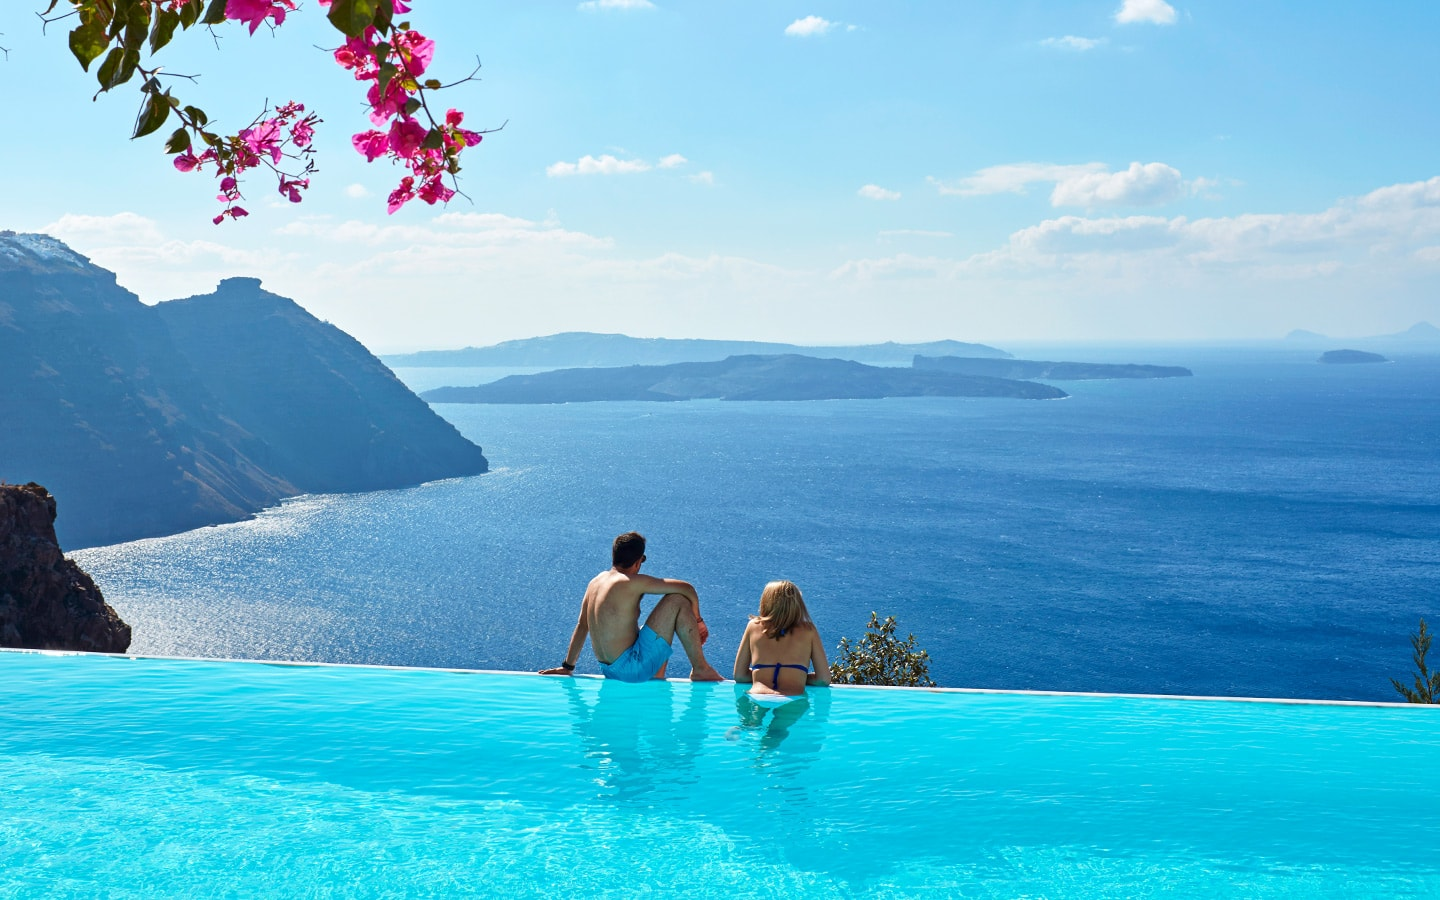 hotel infinity pool san antonio santorini hotel. Black Bedroom Furniture Sets. Home Design Ideas